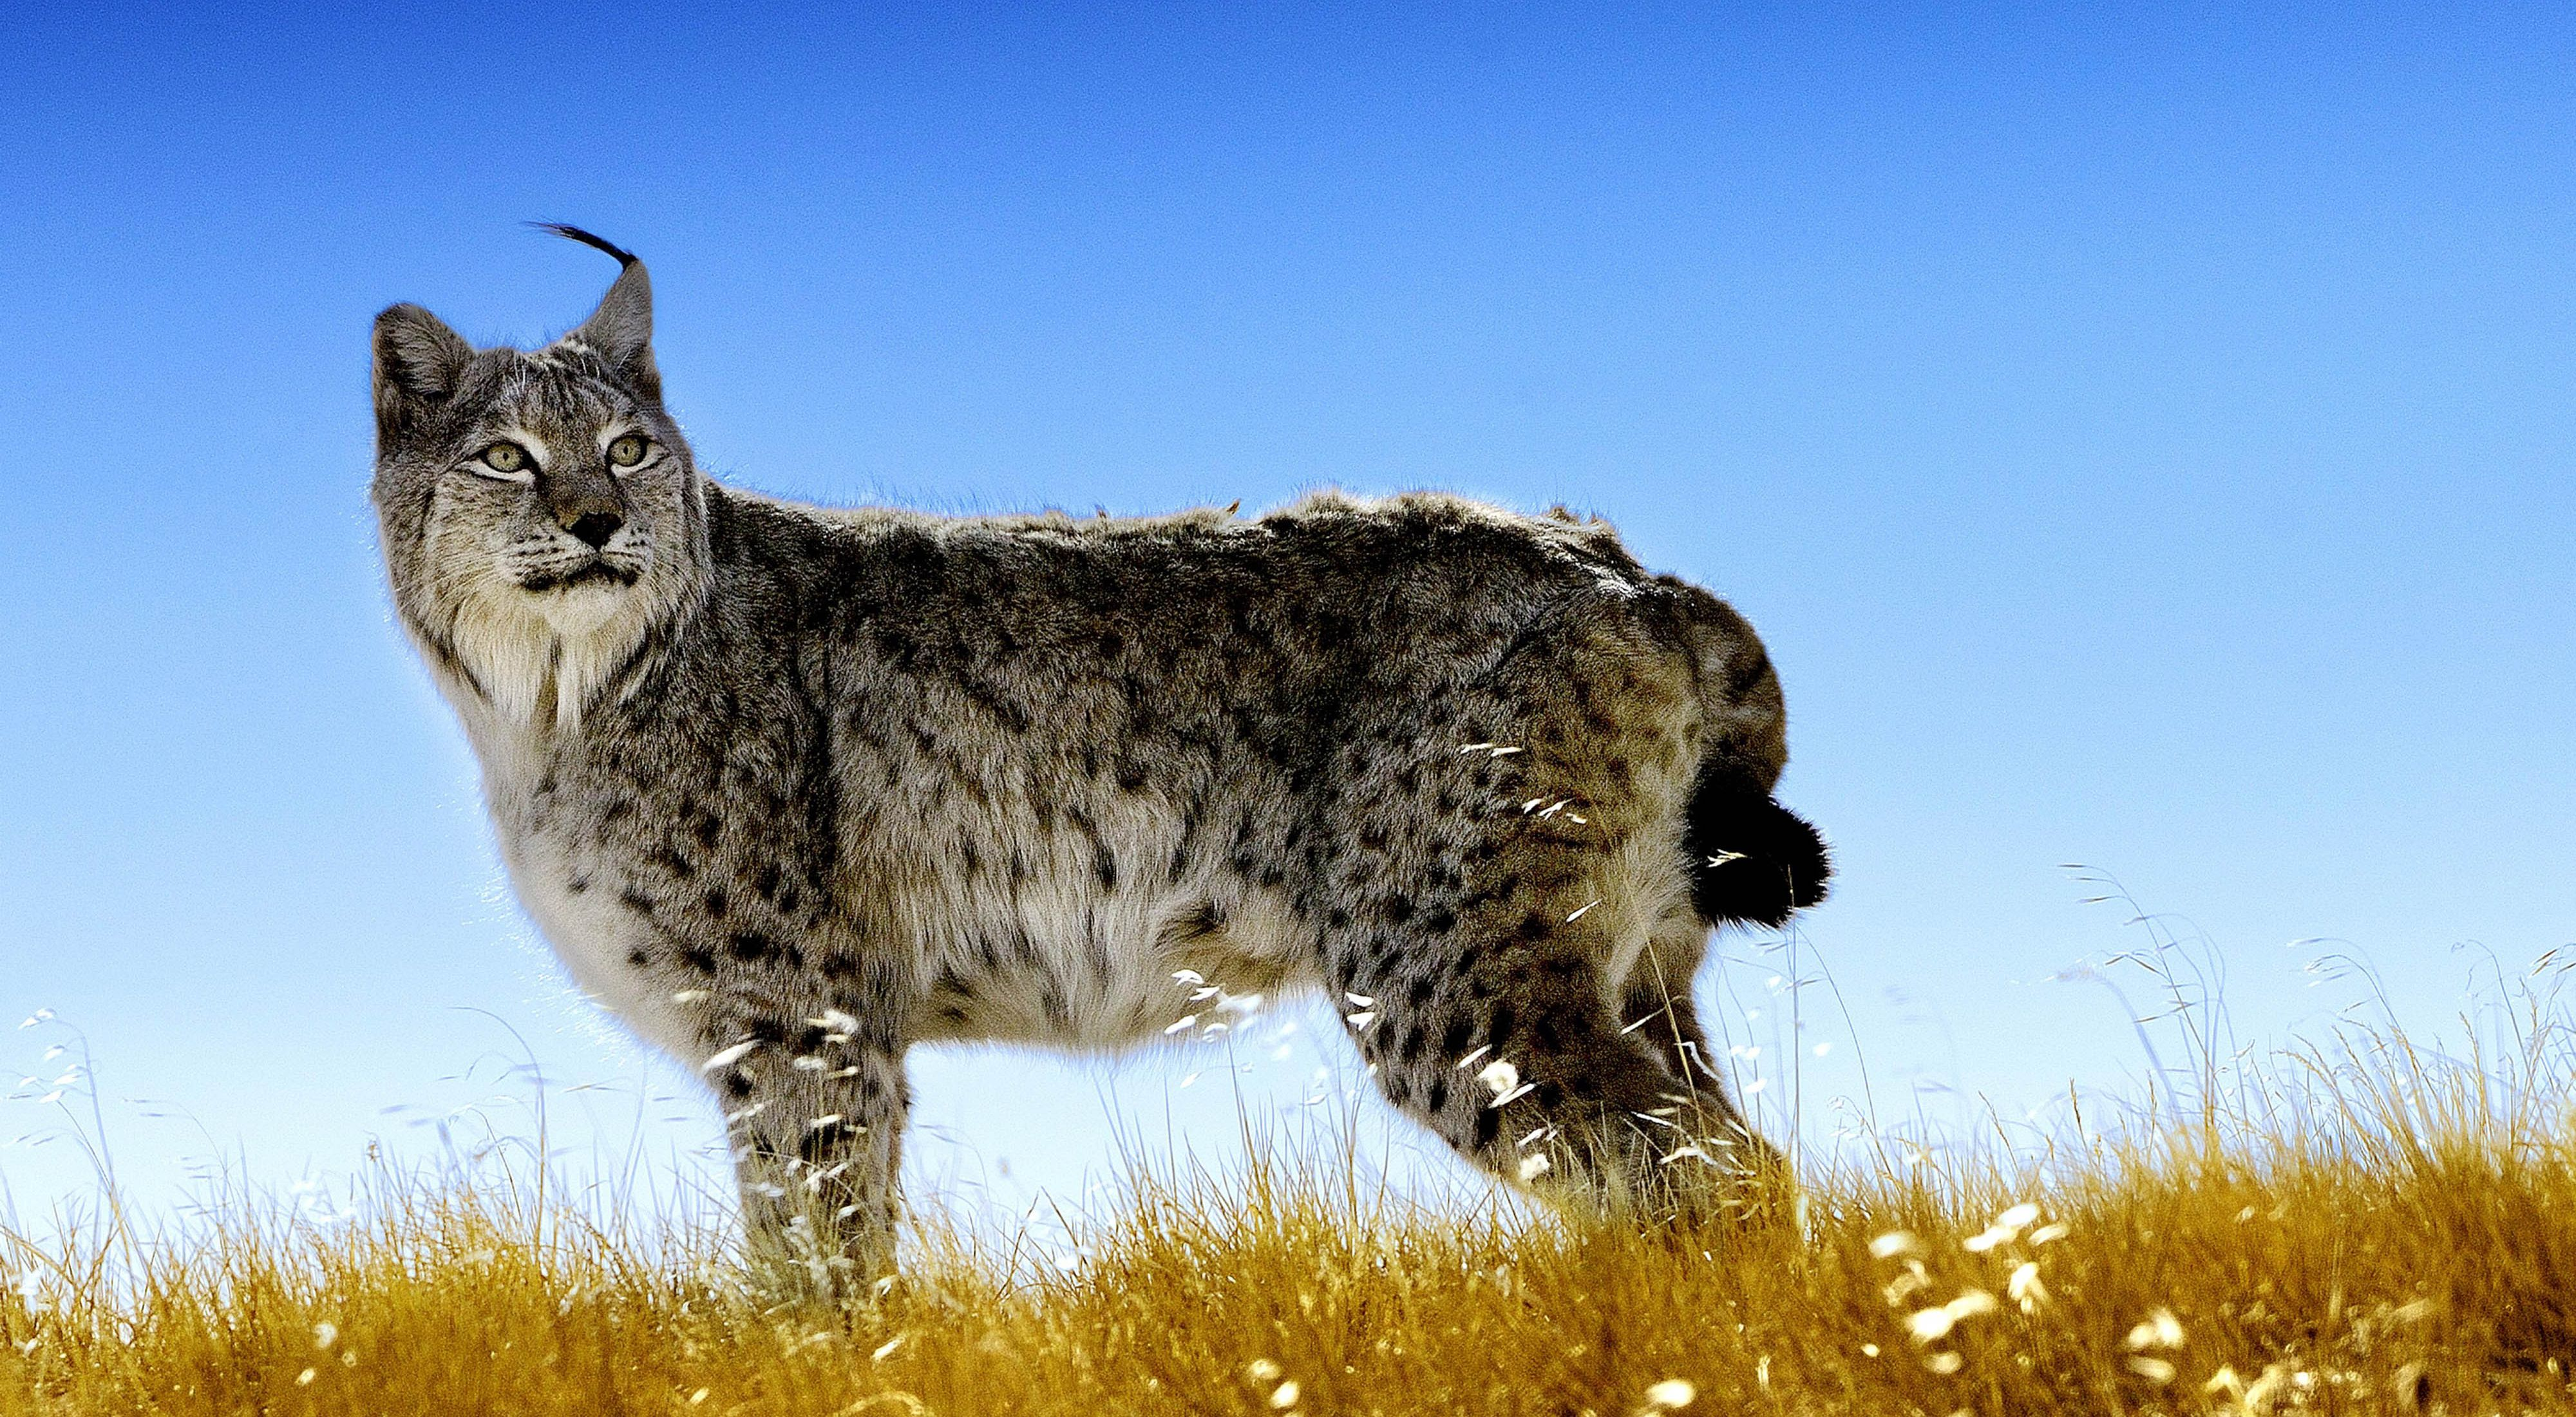 a spotted feline on yellow grass against a blue sky